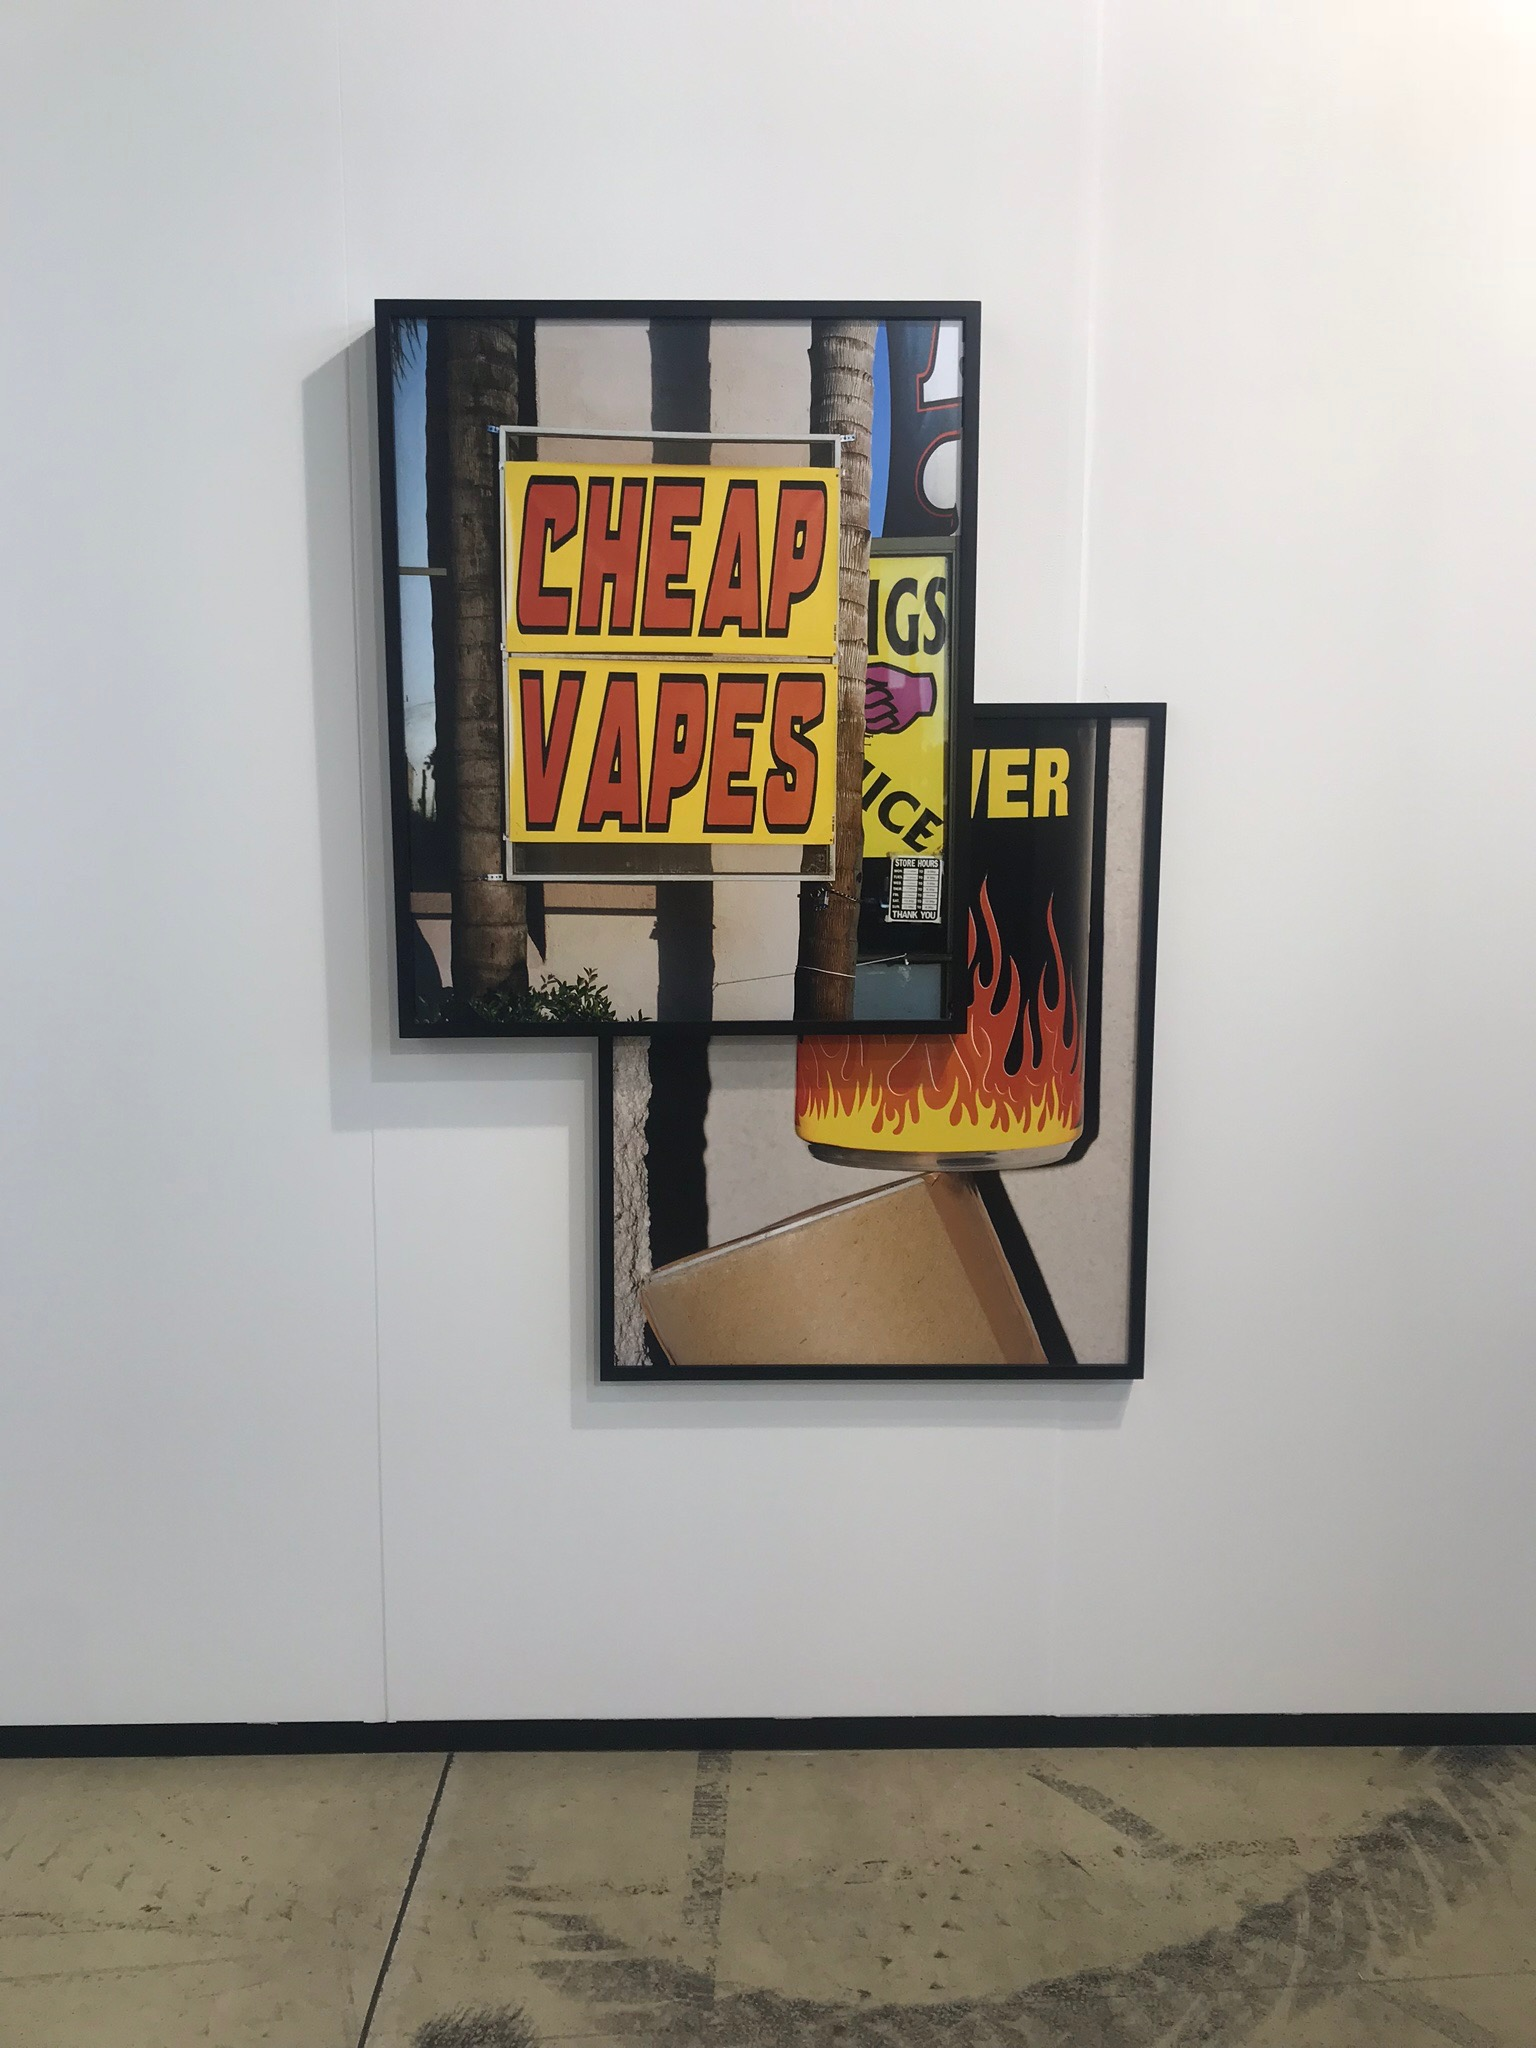 Cheap Vapes/Power, 2018, Viktoria Binschtok, Klemm's